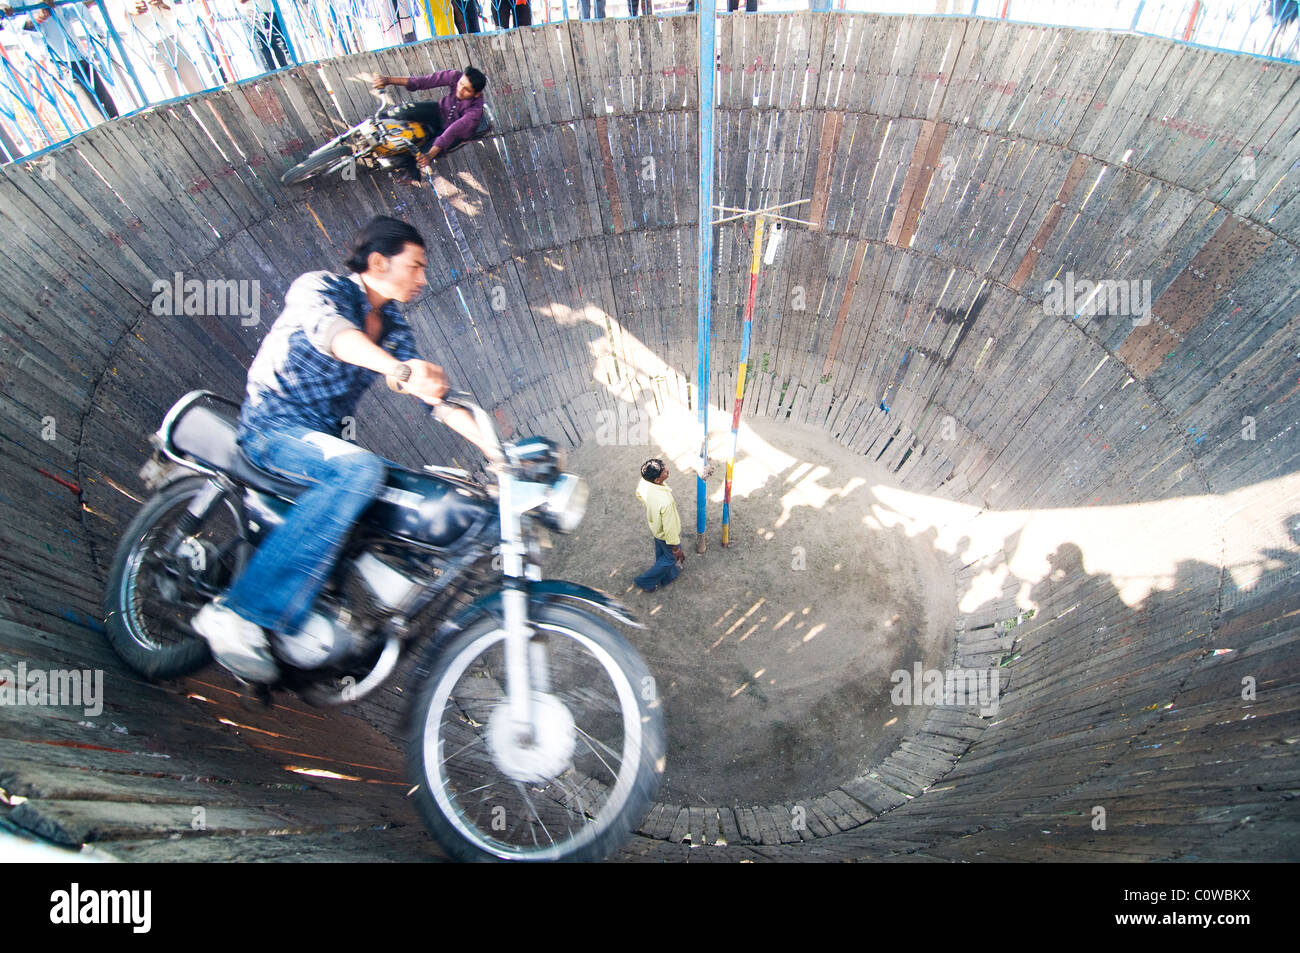 Bikers performing stunts in a rural circus in India. Stock Photo